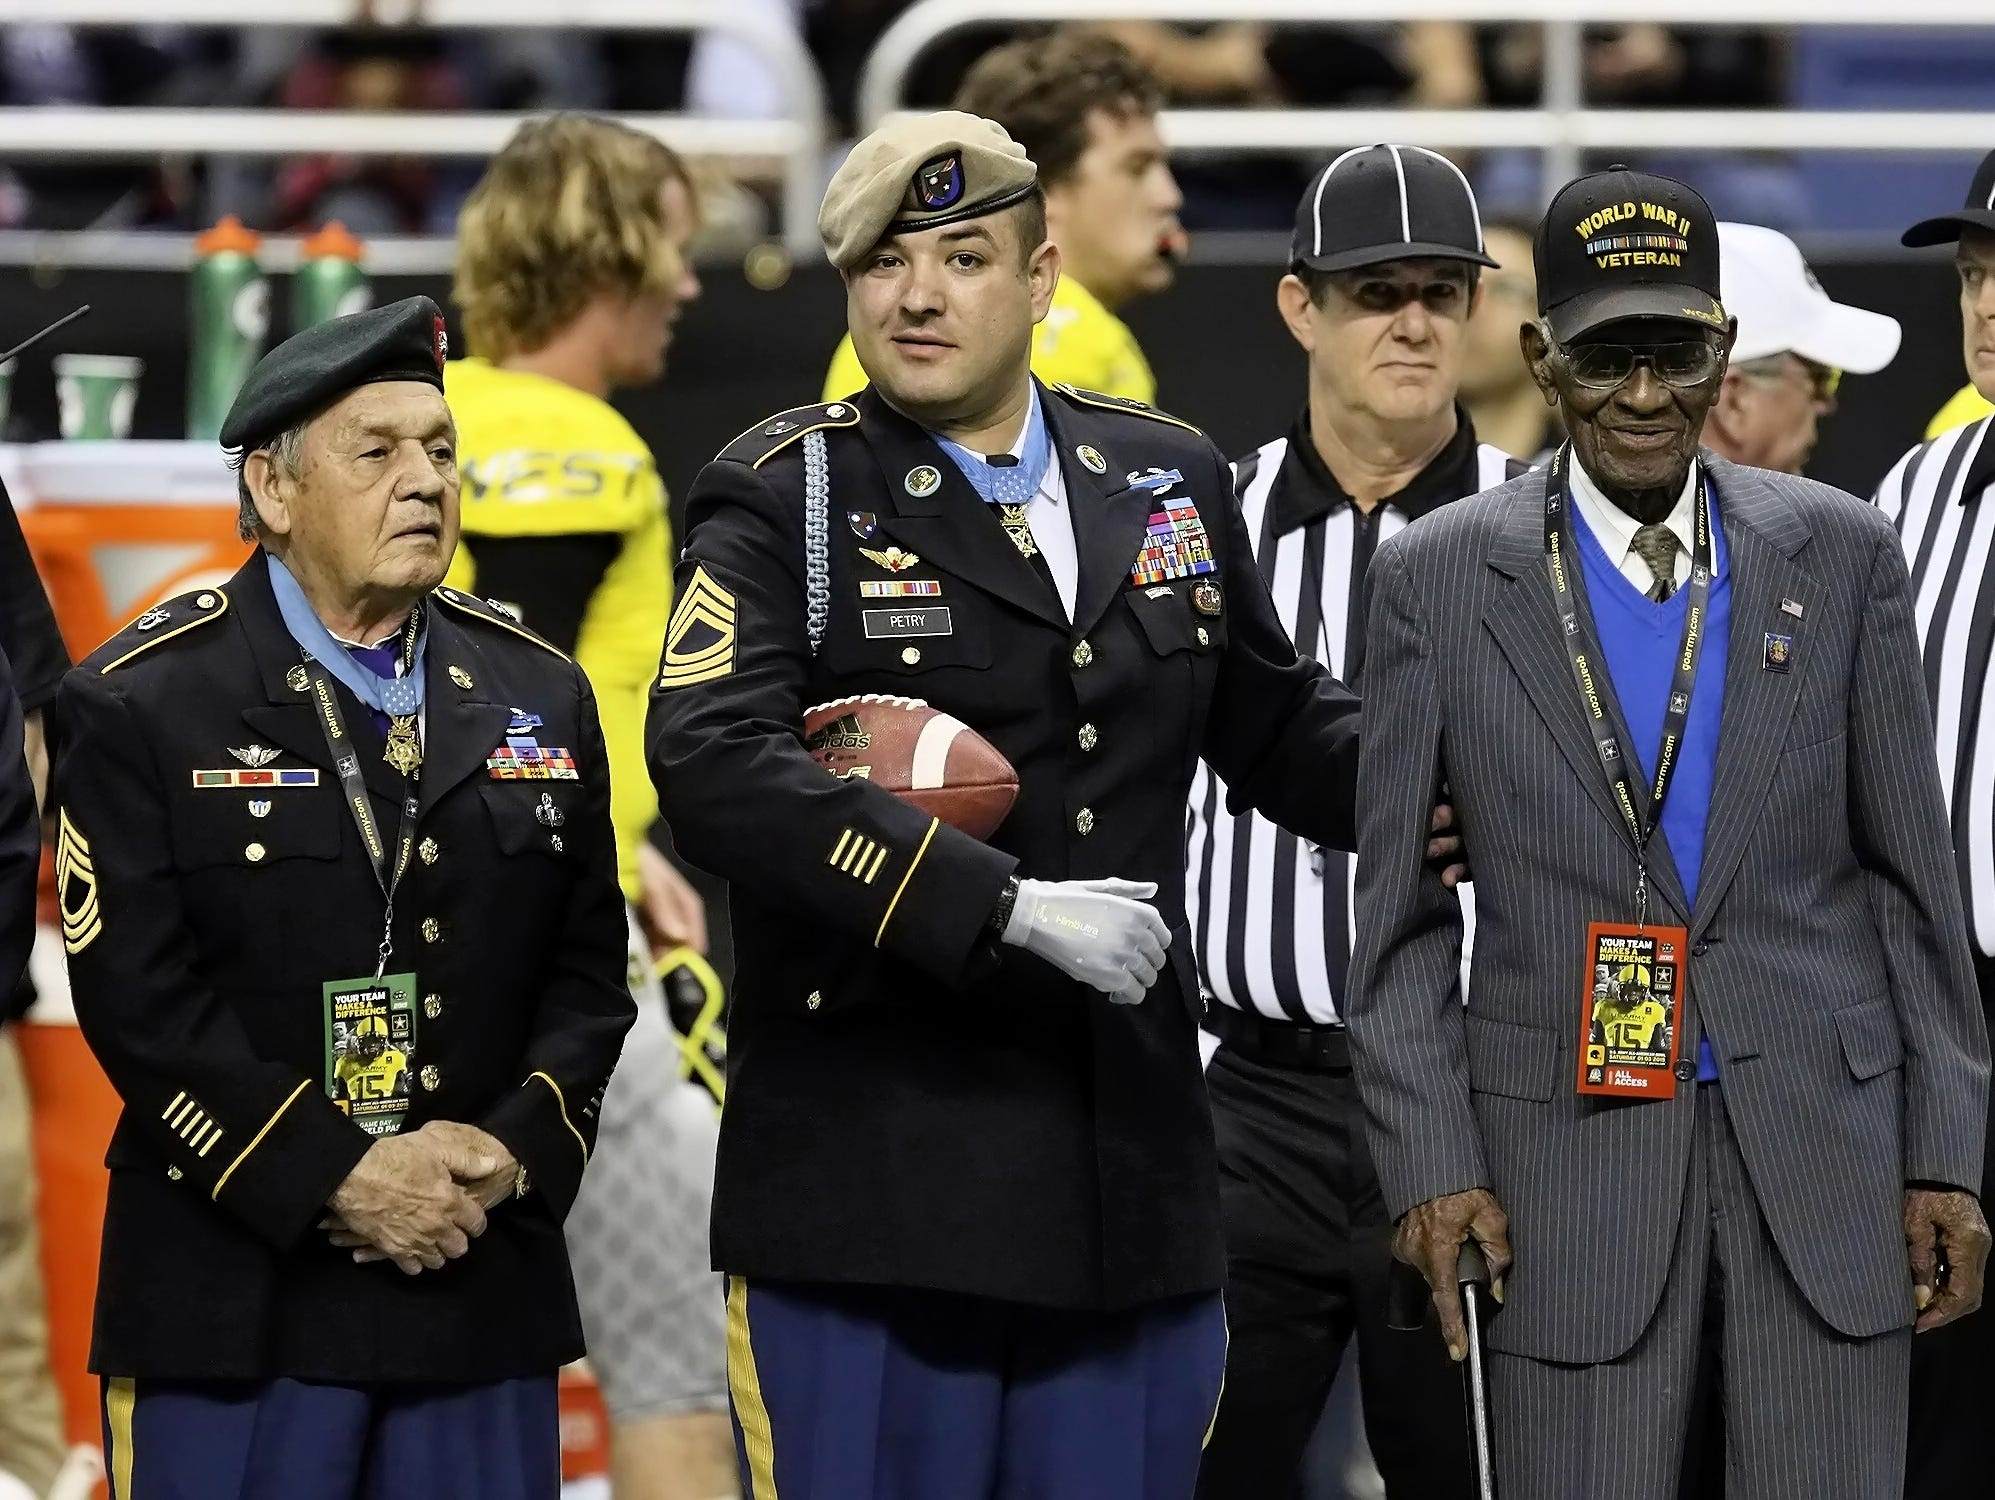 Jose Rodela, left, stands with two other Medal of Honor recipients, Leroy Petry, center, and Richard Overton, before Saturday's All-American Bowl.